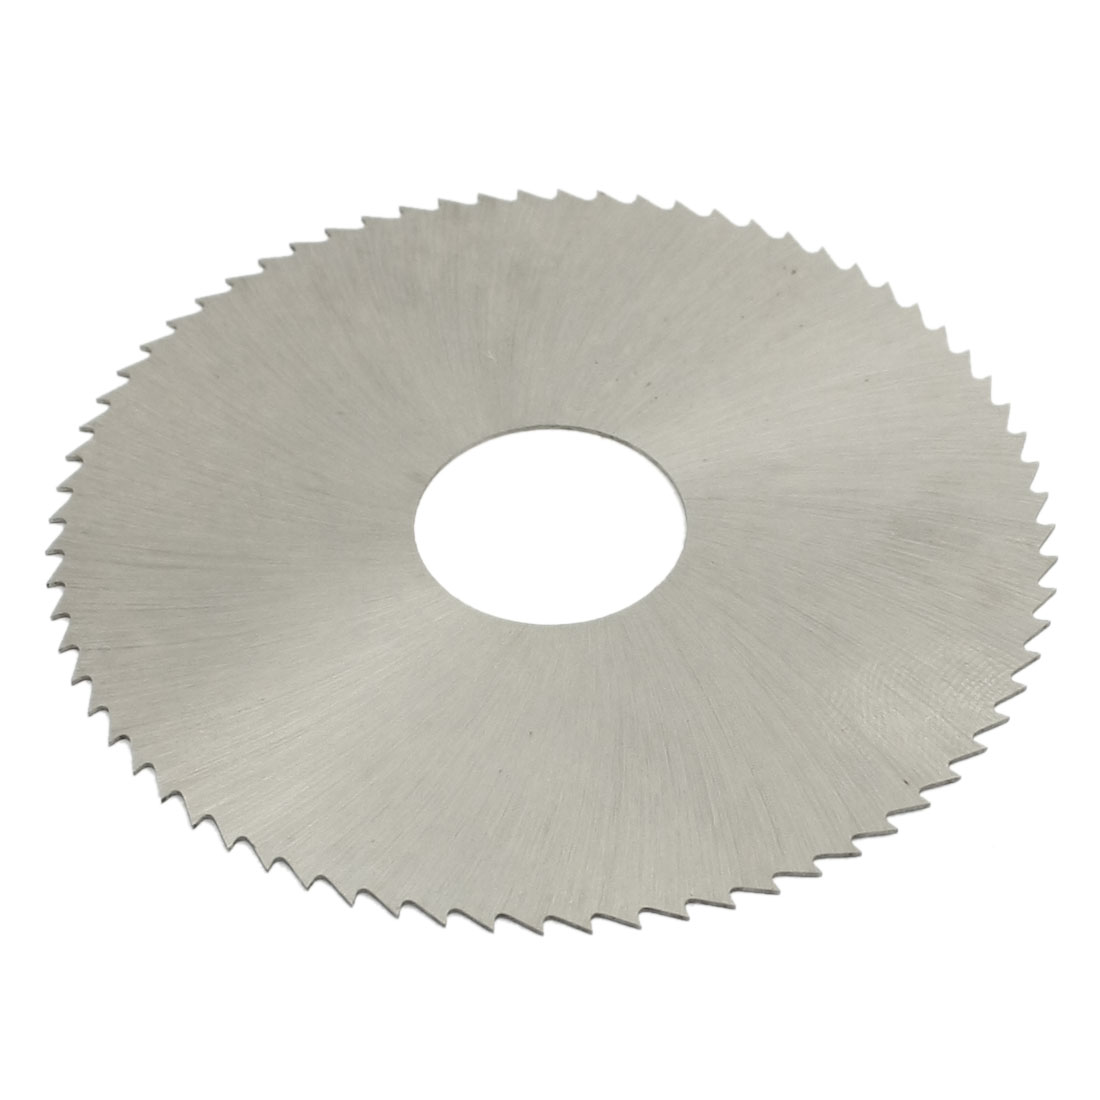 72T HSS Toothed Slitting Saw Cutting Tool 60mm x 0.4mm x 13mm